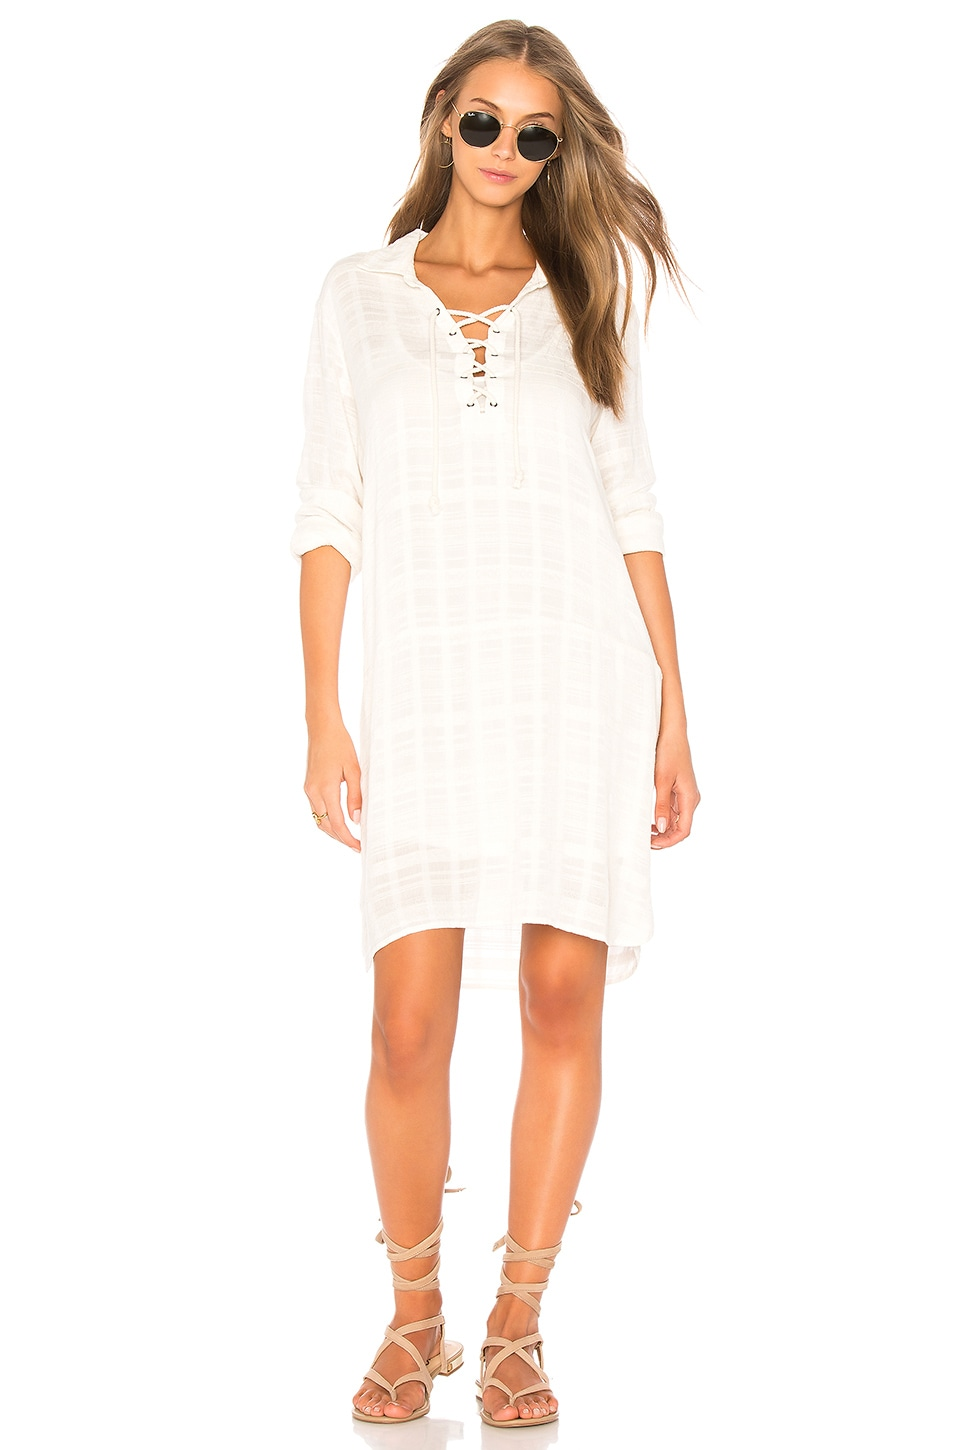 Sandbar Stripe Lace Up Dress by Splendid